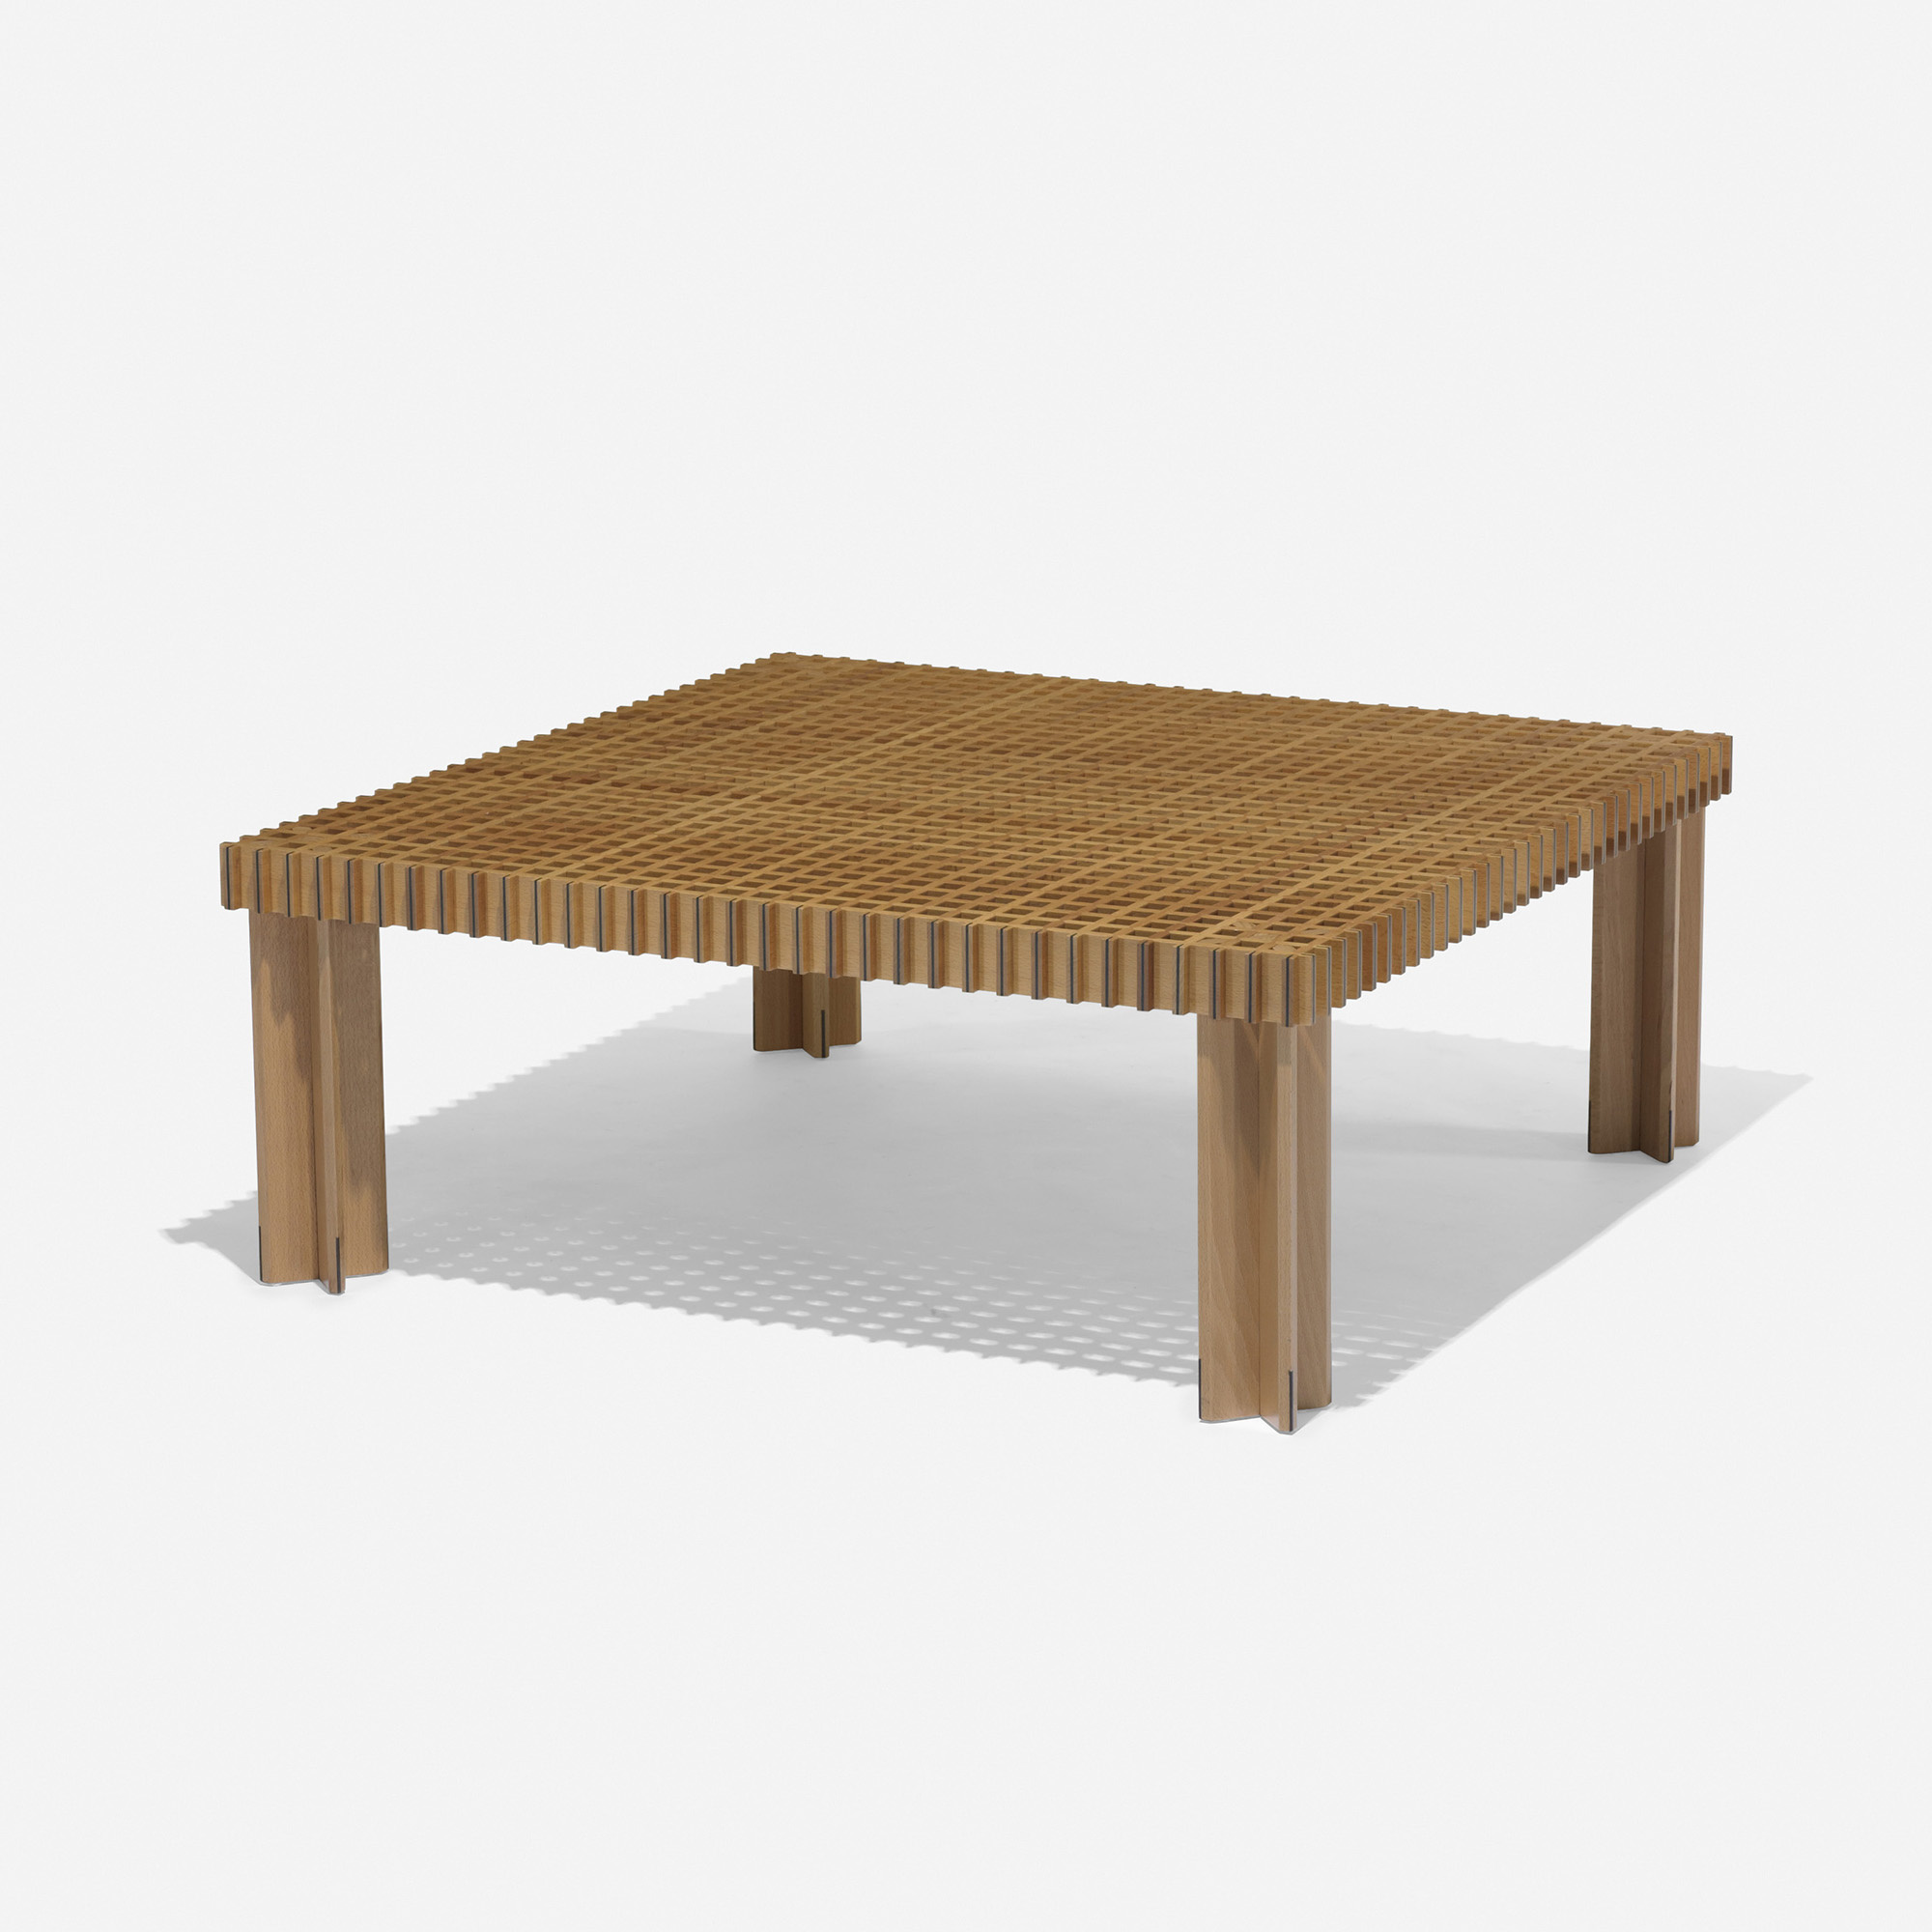 349: Gianfranco Frattini / Kyoto Coffee Table (1 Of 2)